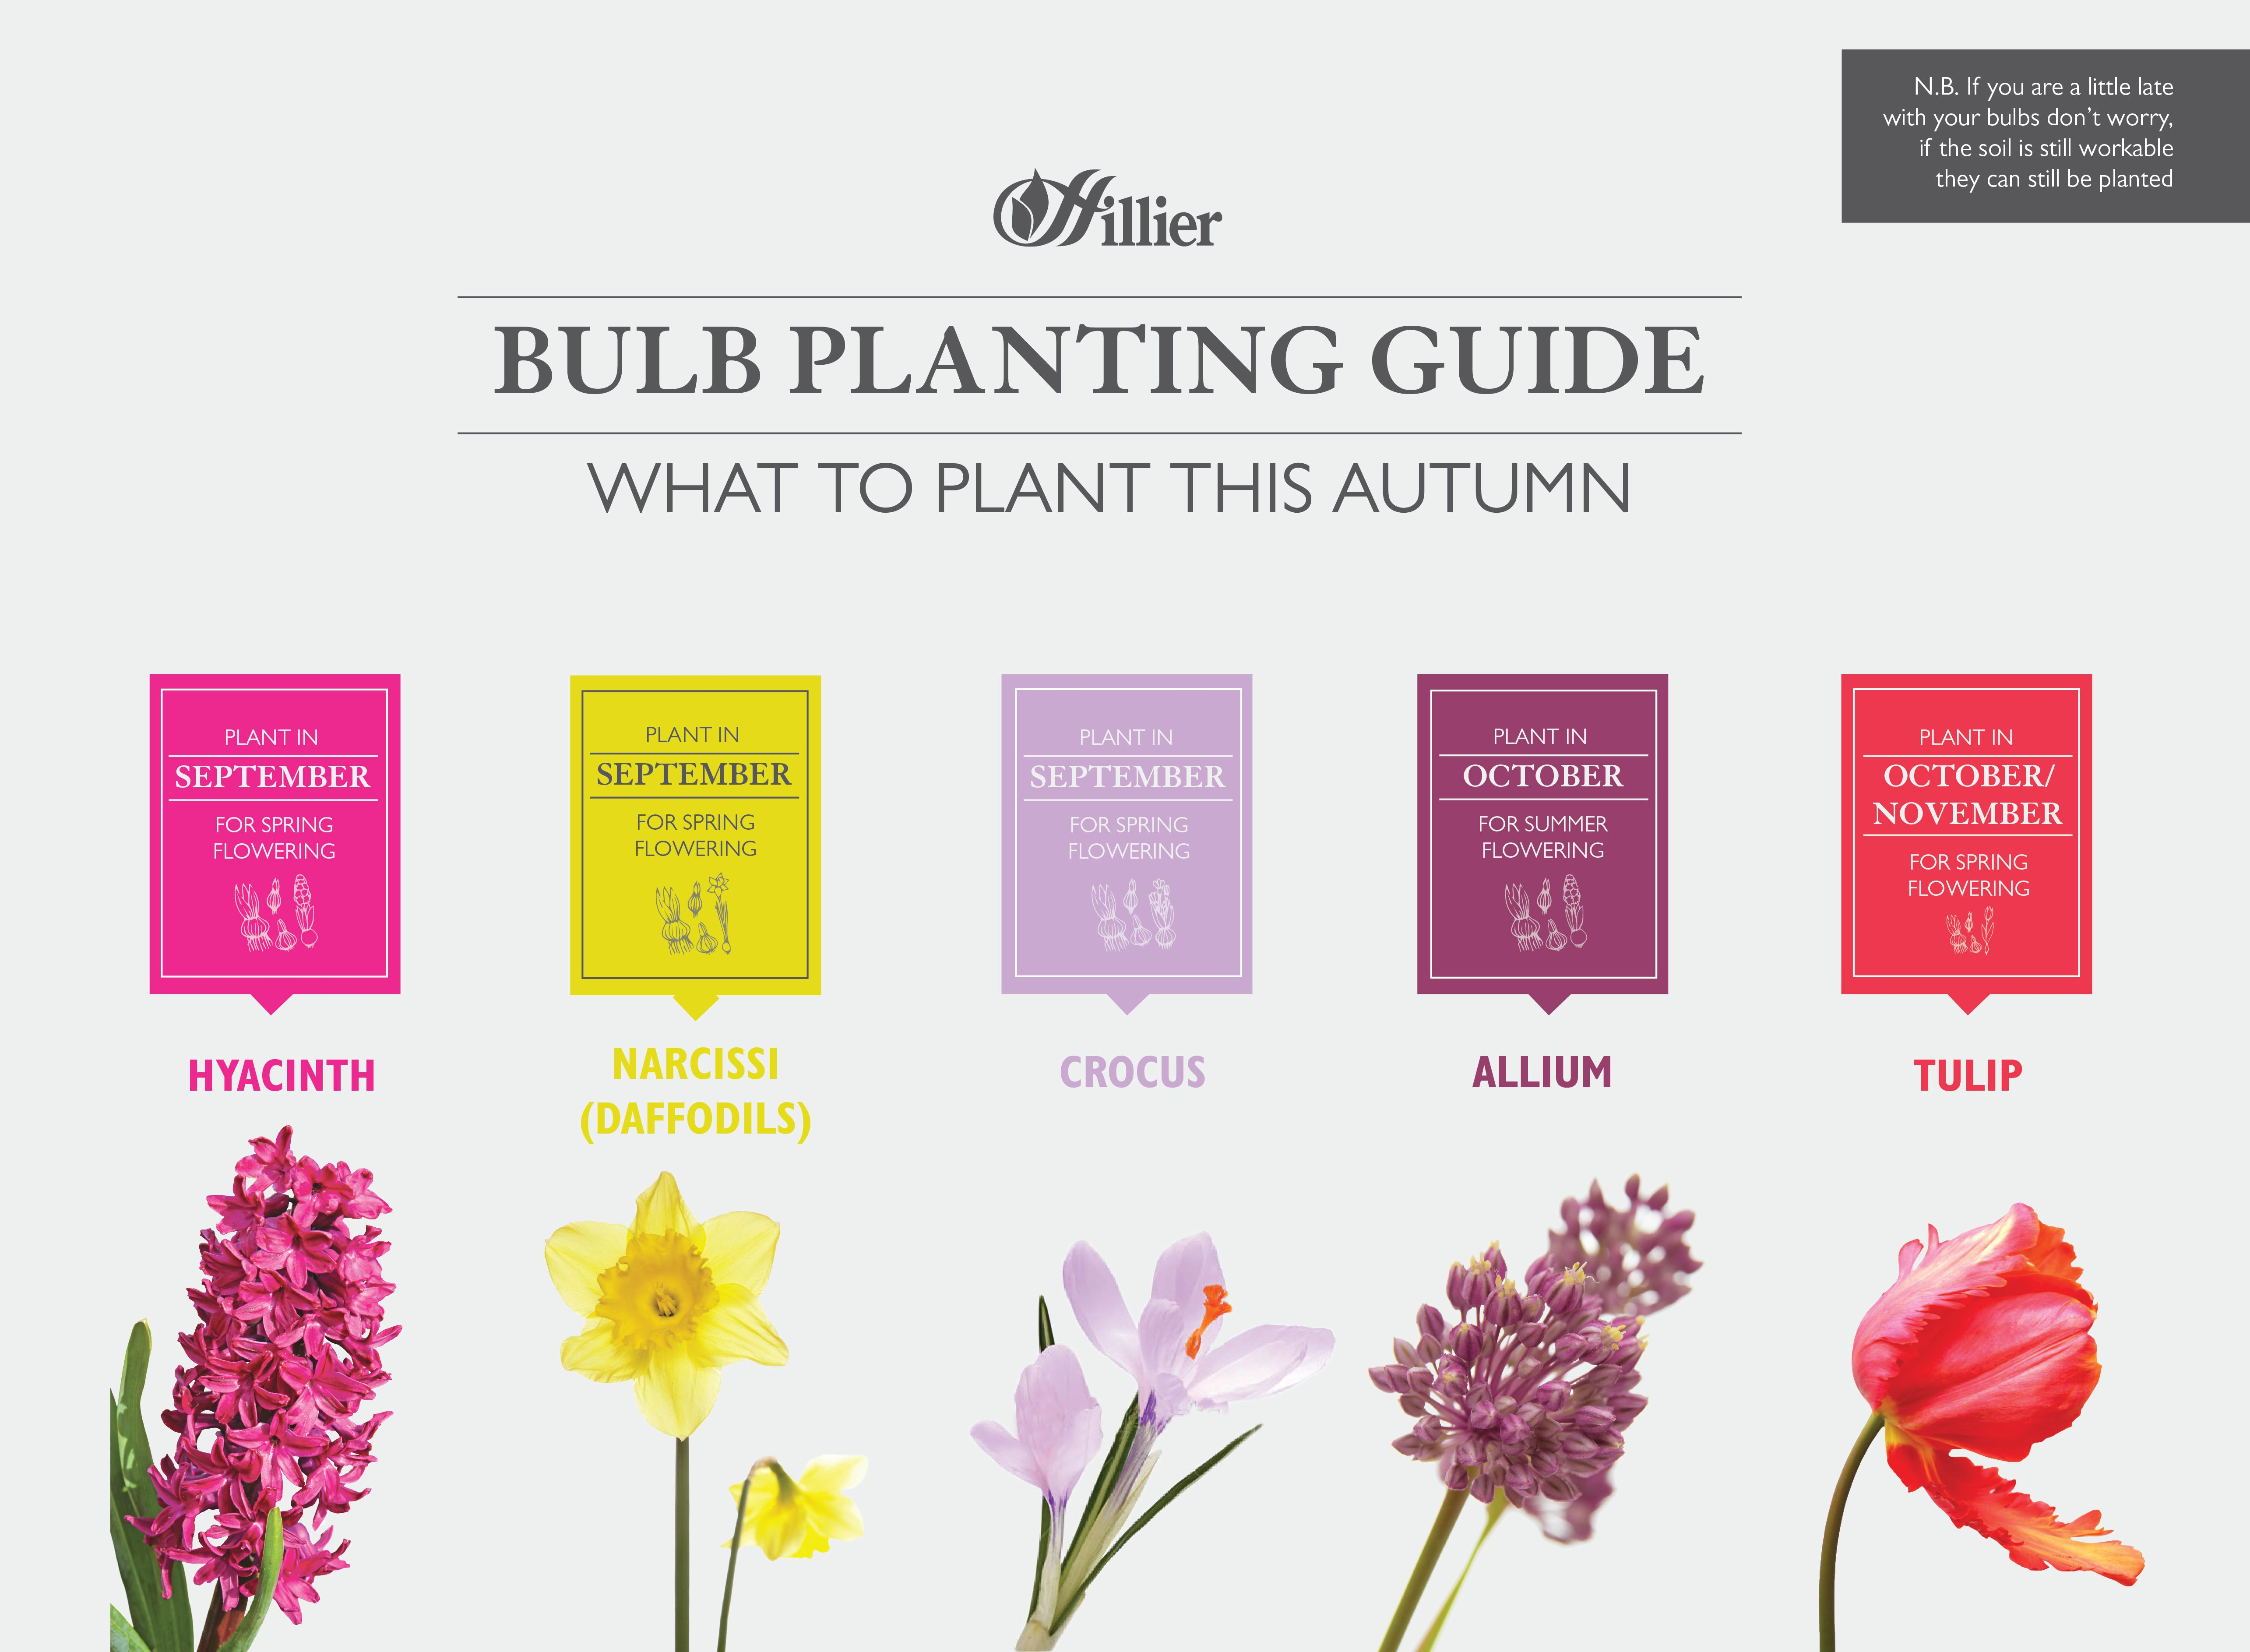 Hillier bulb planting guide what bulbs to plant this autumn for hillier bulb planting guide what bulbs to plant this autumn for spring and mightylinksfo